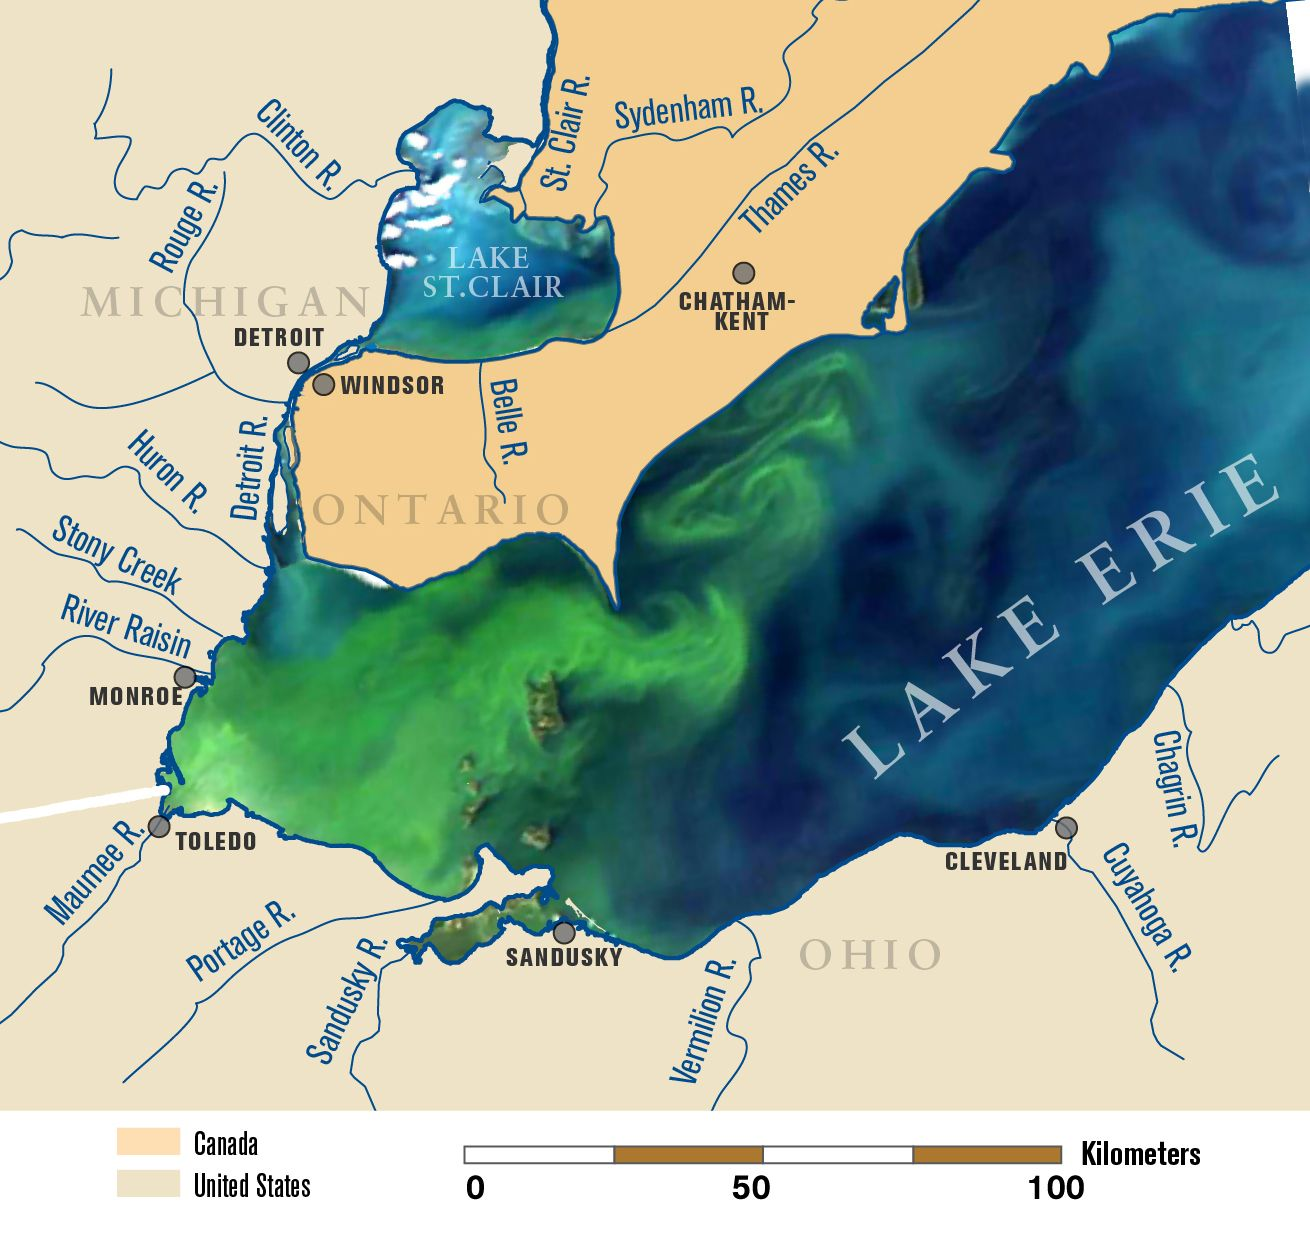 Satellite Image Of Lake Erie In September Overlaid On A Map - Map of current us political issues